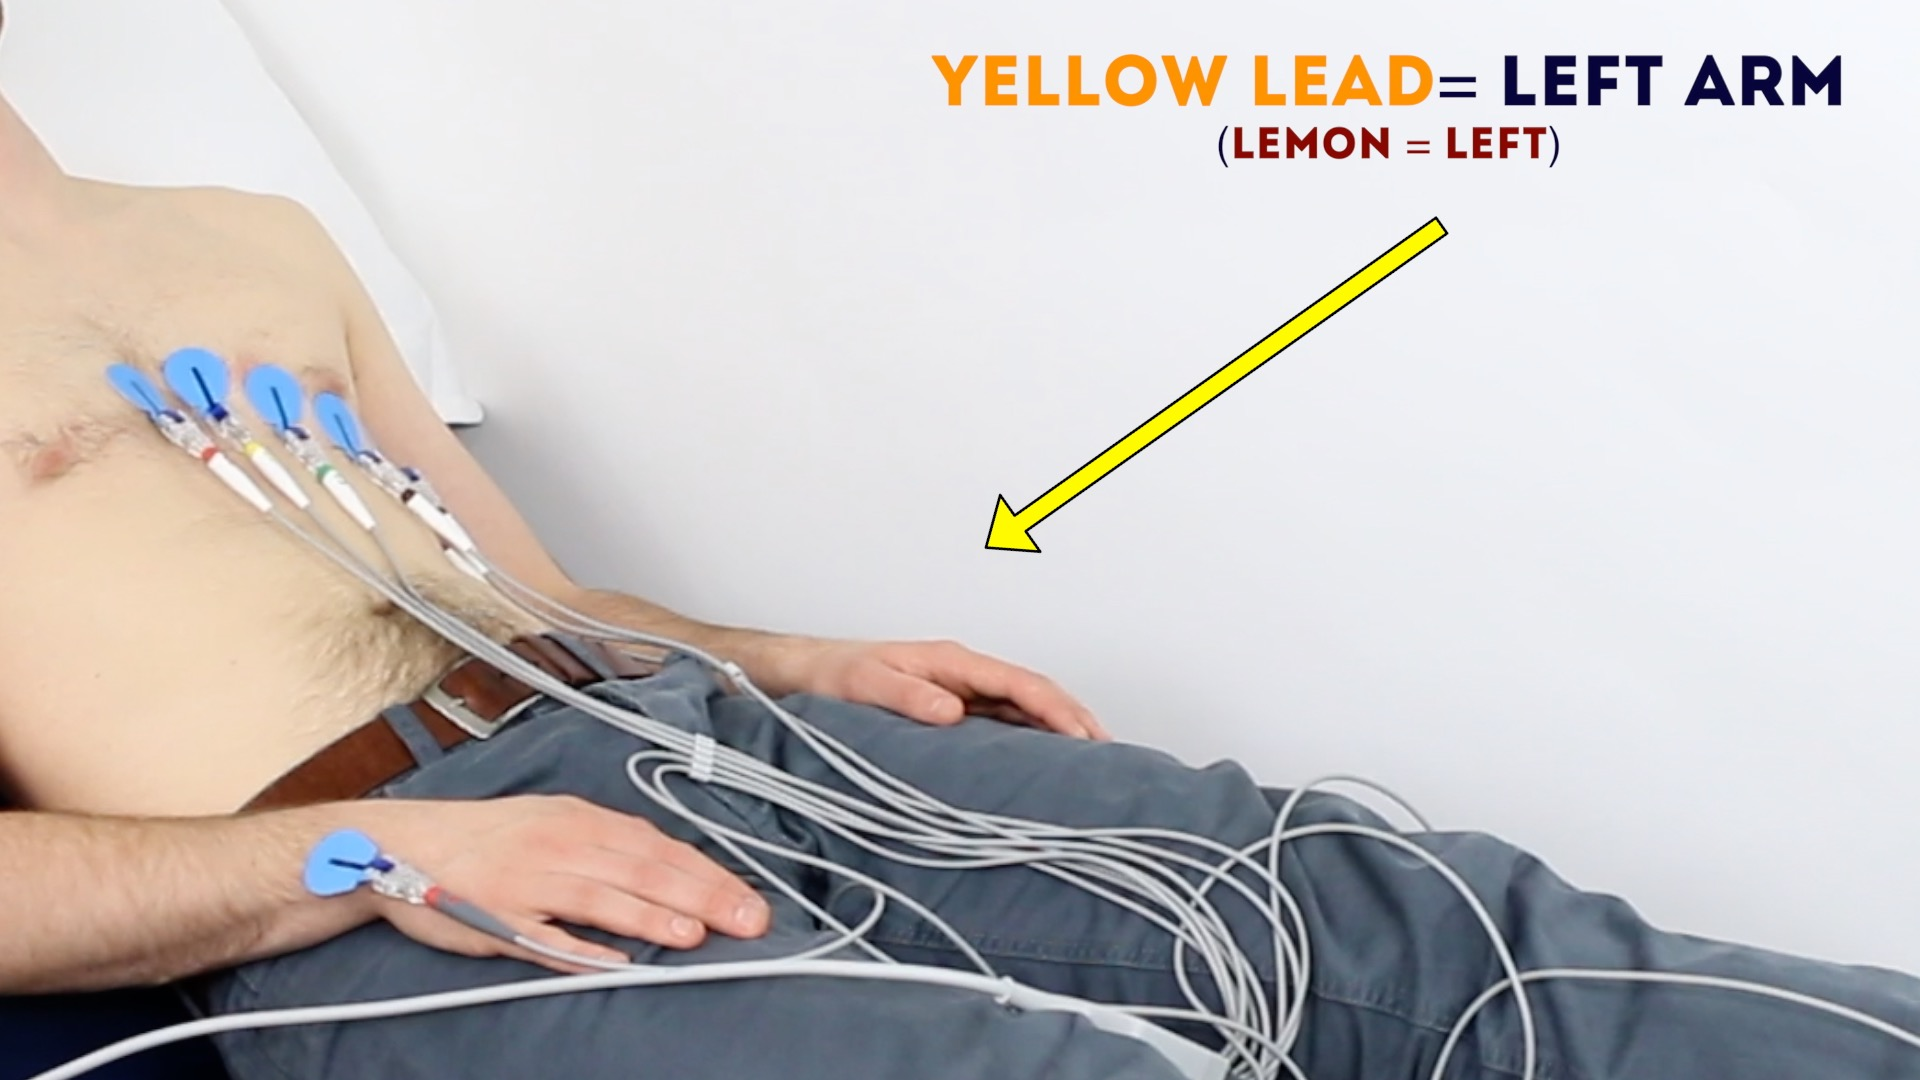 Connect the yellow ECG lead to the electrode on the left arm